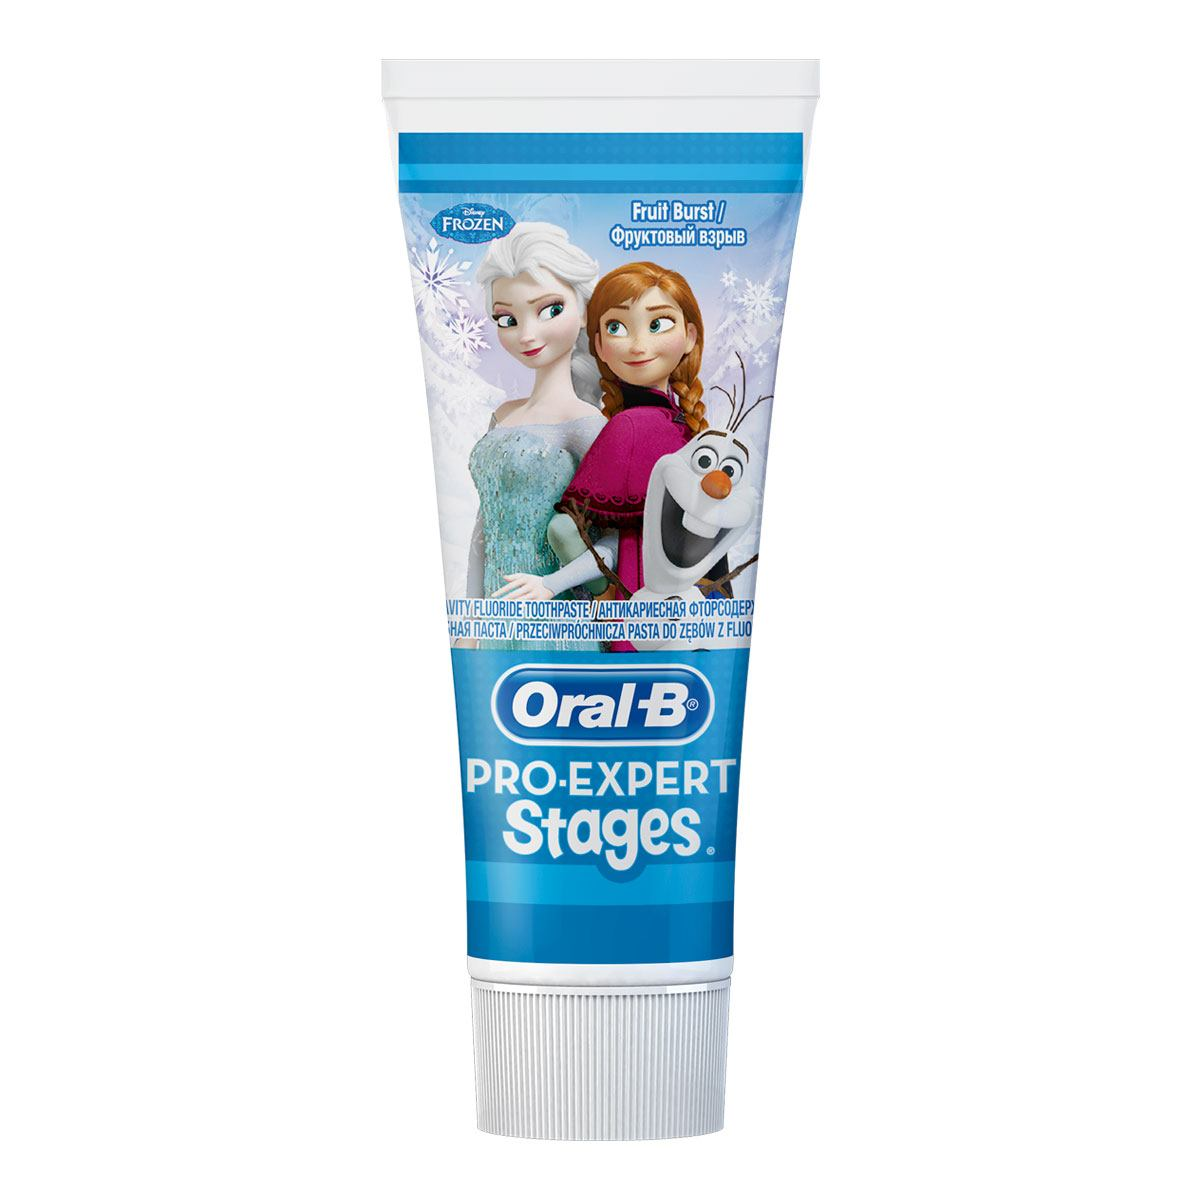 3014260093334_81552605_Oral-B-Stages-Frozen-ocuk-Di-Macunu